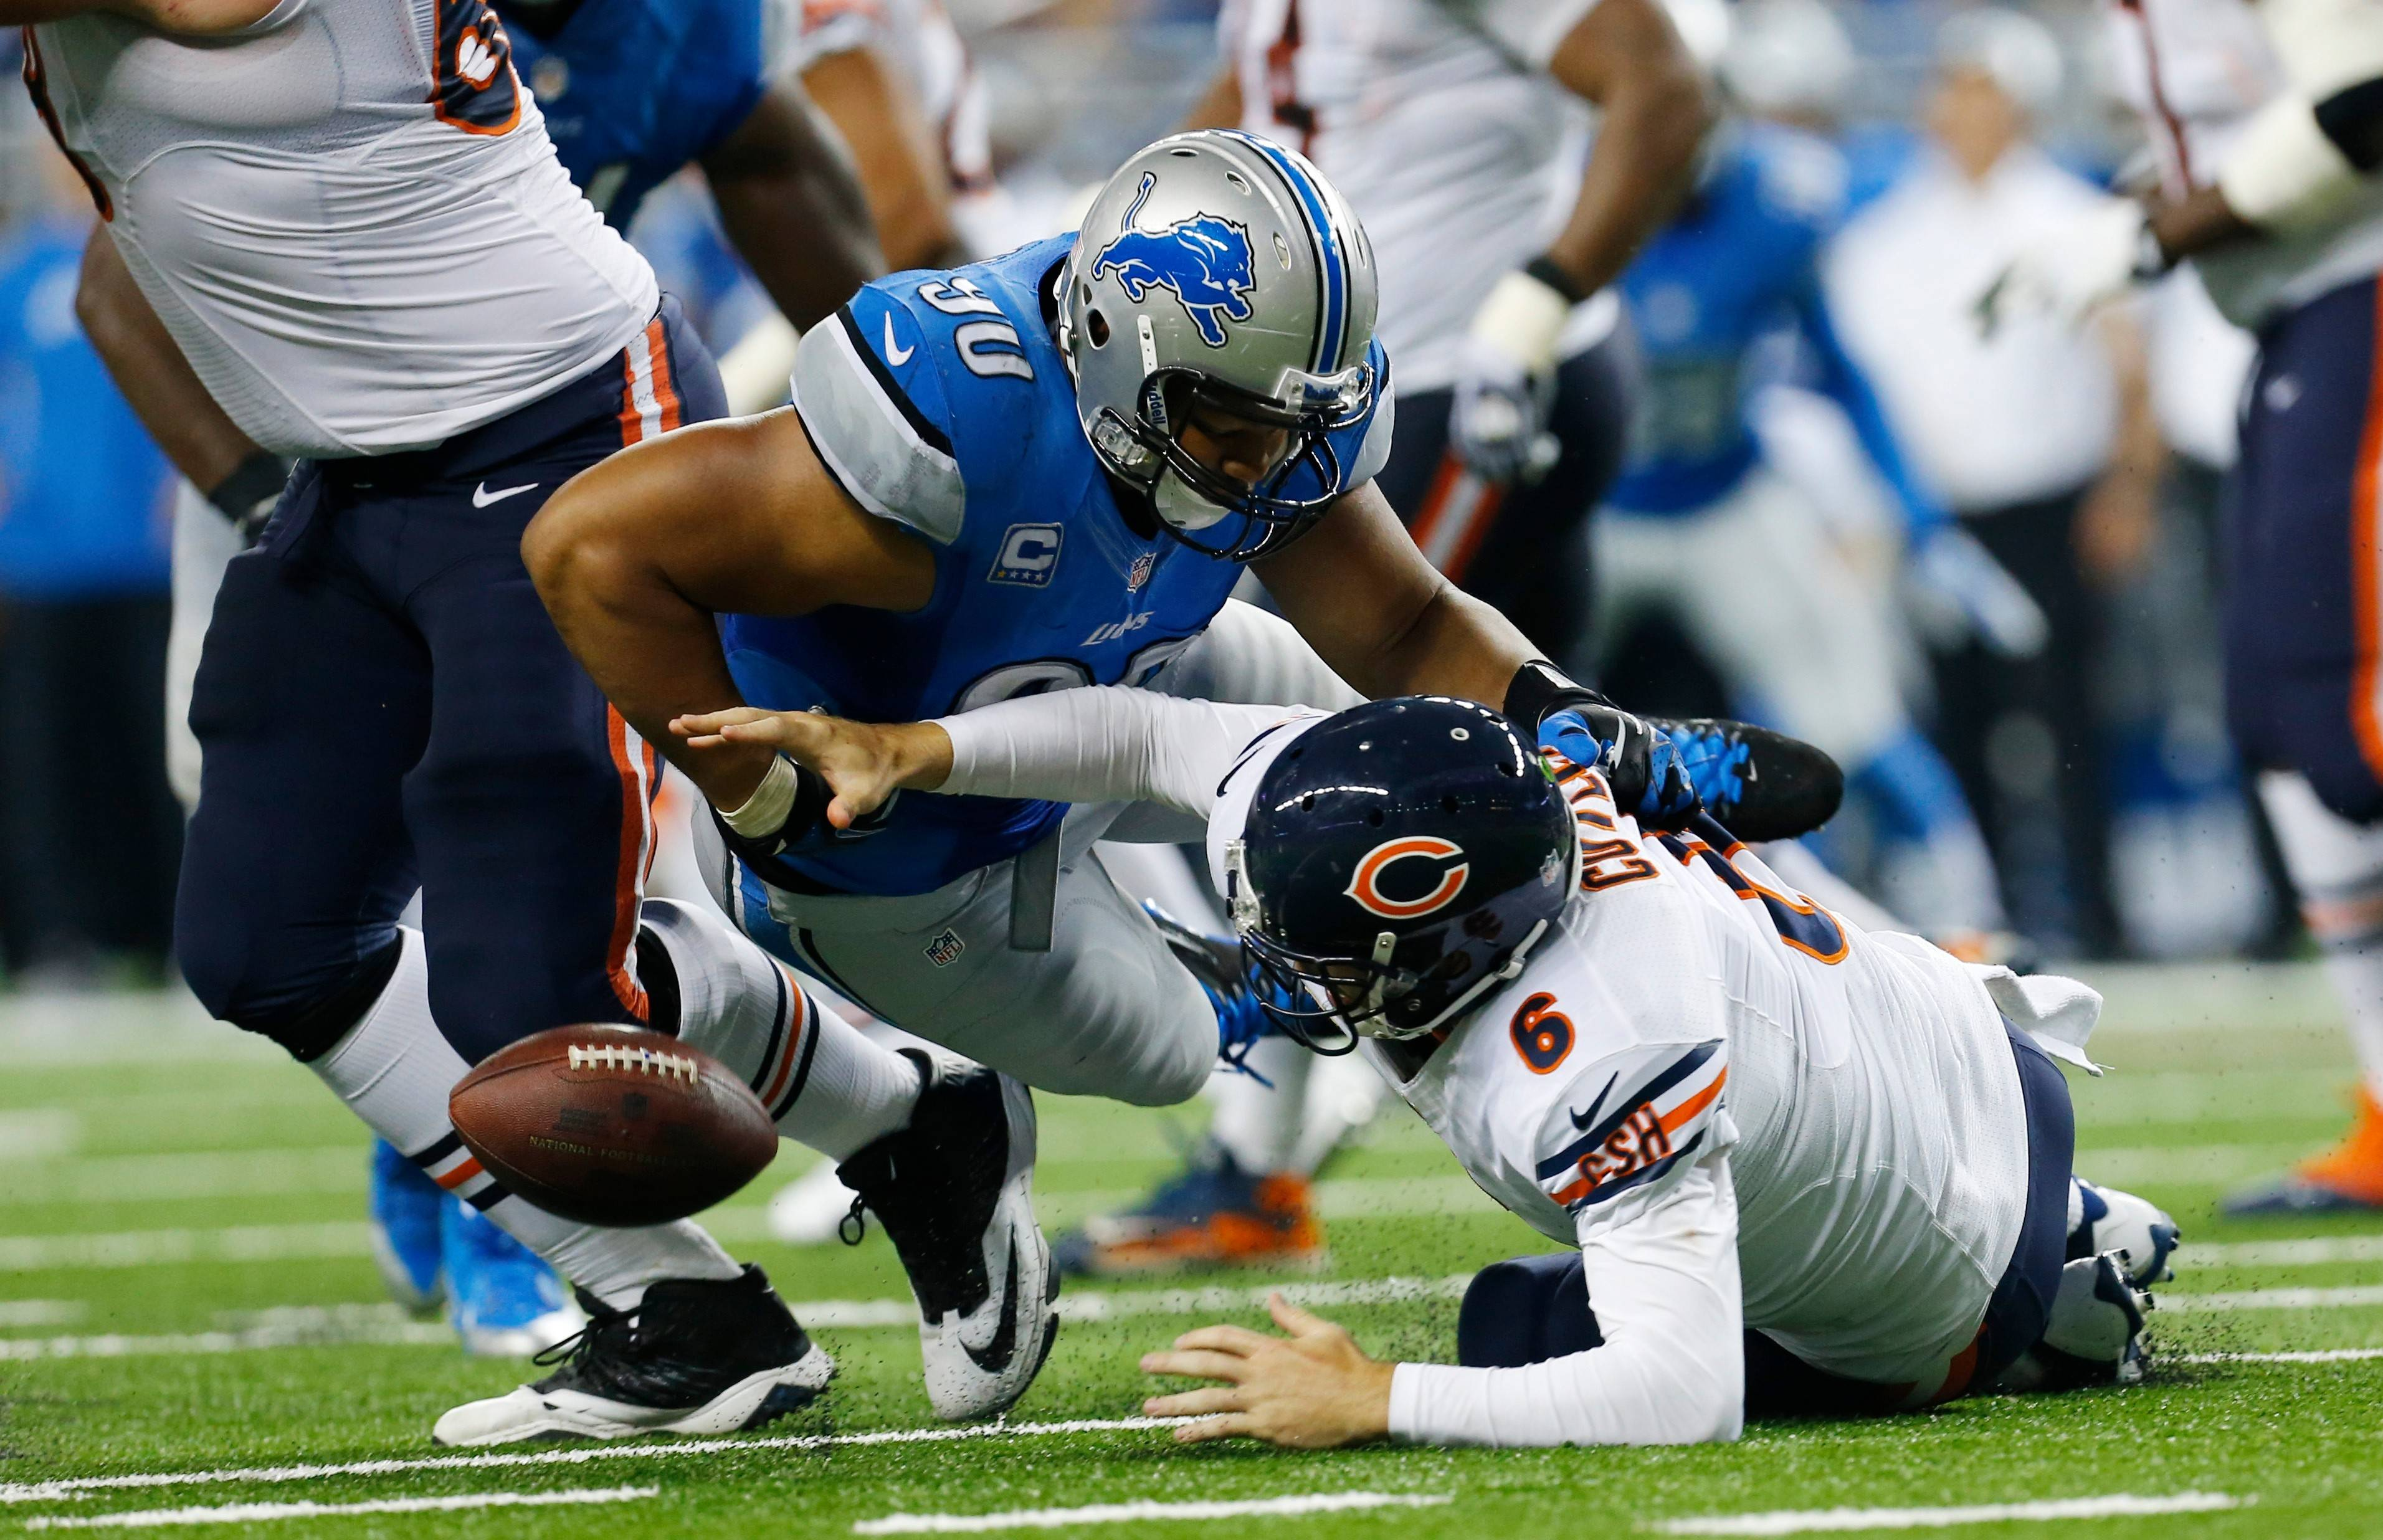 Pressure from Lions defensive tackle Ndamukong Suh will be of primary concern for quarterback Jay Cutler and the Bears' offense Thursday at Detroit.